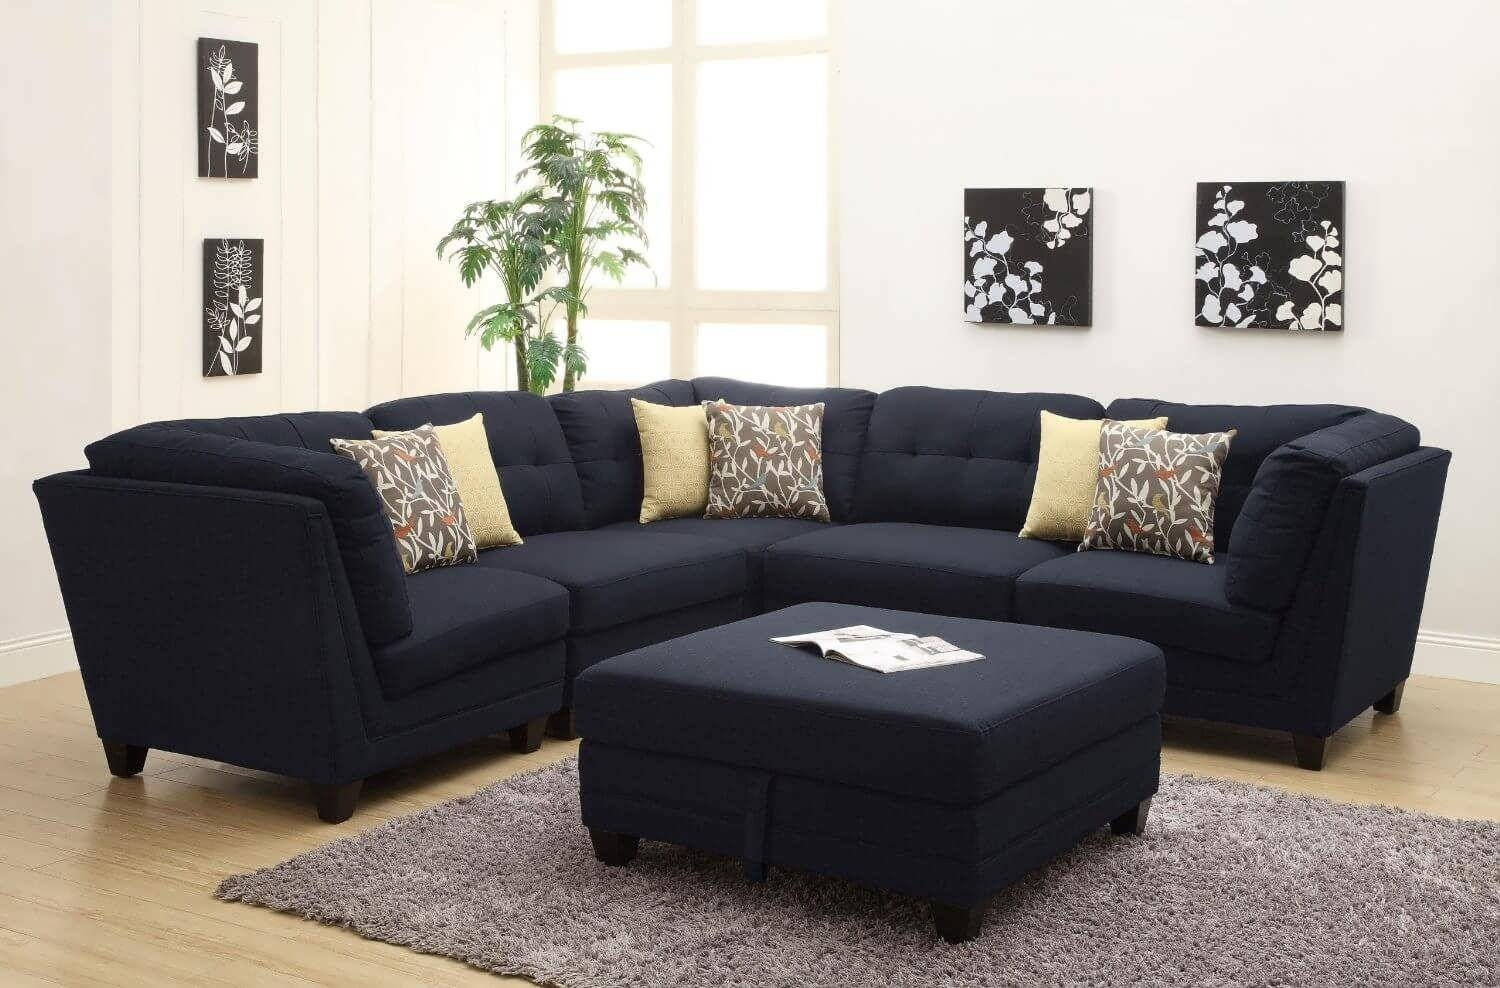 Sofa : Blue Microfiber Sofa Plush Sleeper Sofa Suede Couches For regarding Blue Microfiber Sofas (Image 12 of 15)